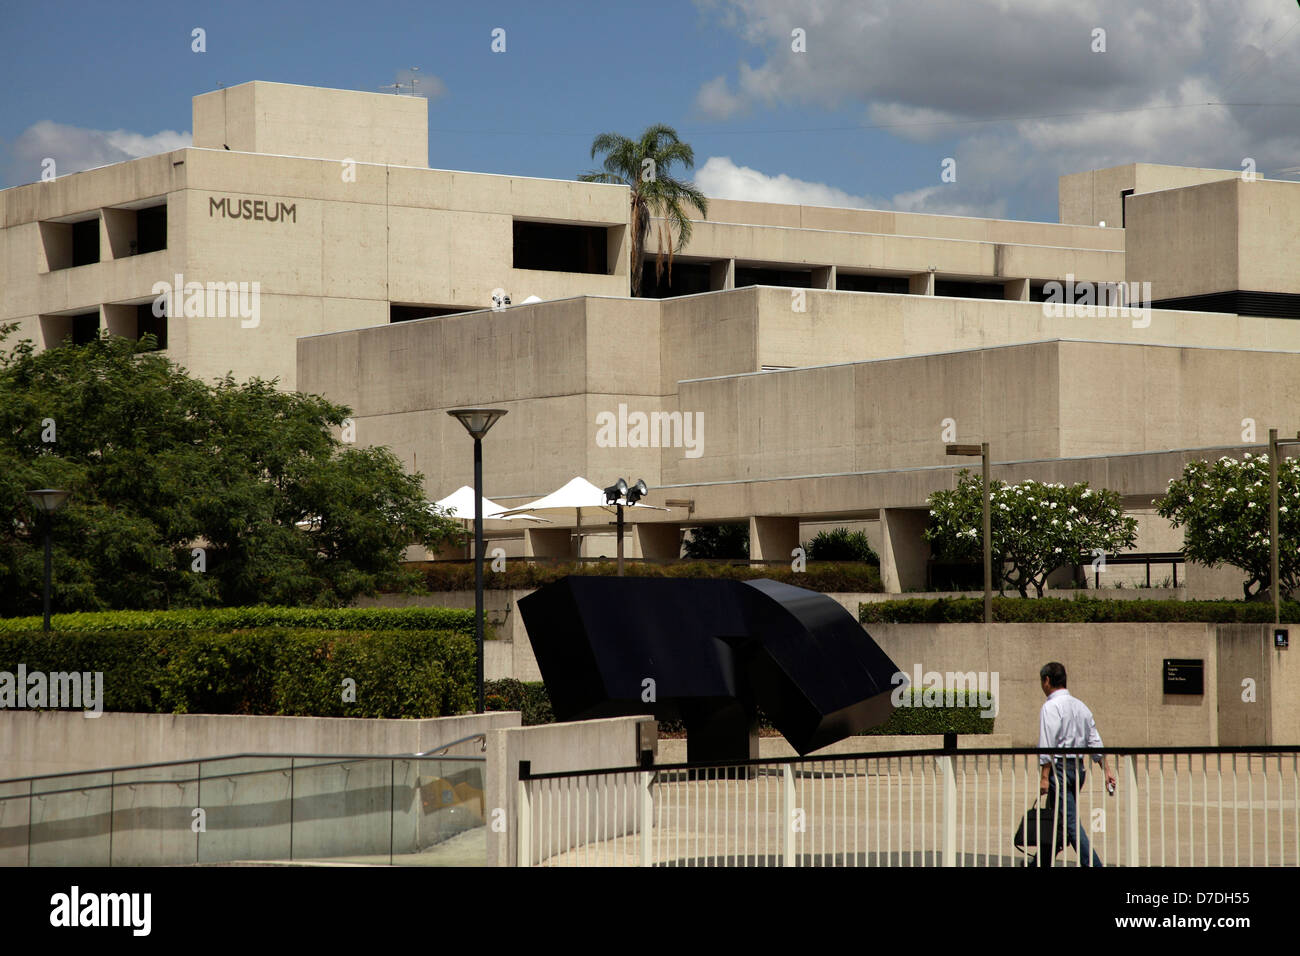 Queensland Cultural Center and Museum on South Bank in Brisbane, Queensland, Australien - Stock Image